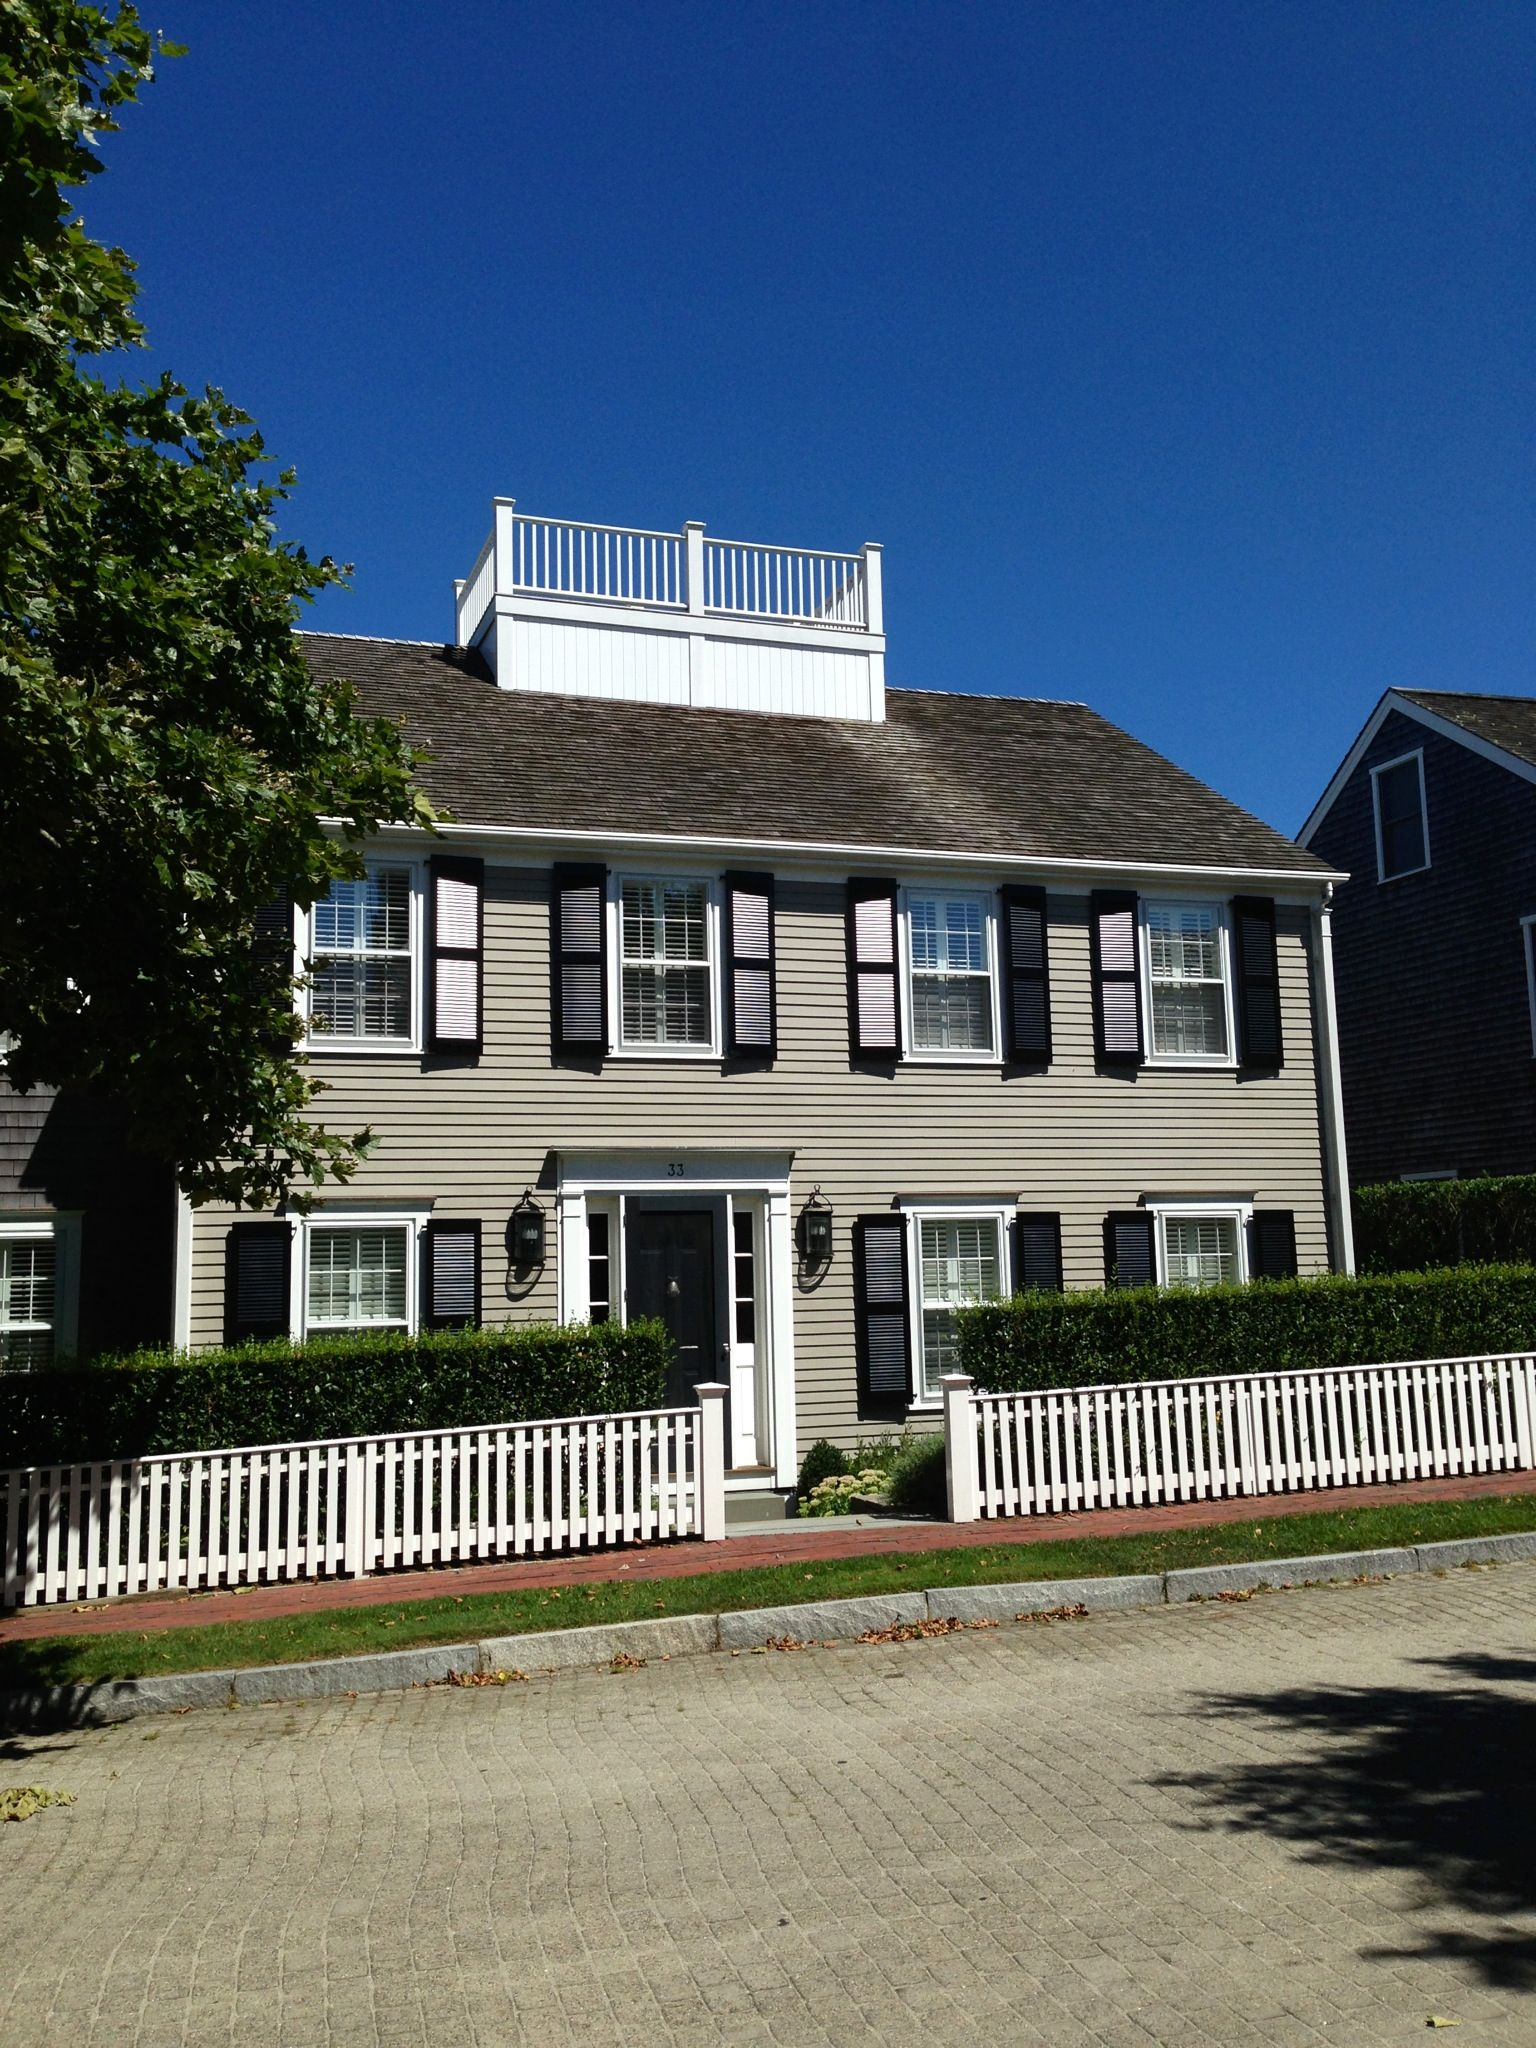 Briarwood Benjamin Moore Home Exterior Paint With Black Shutters